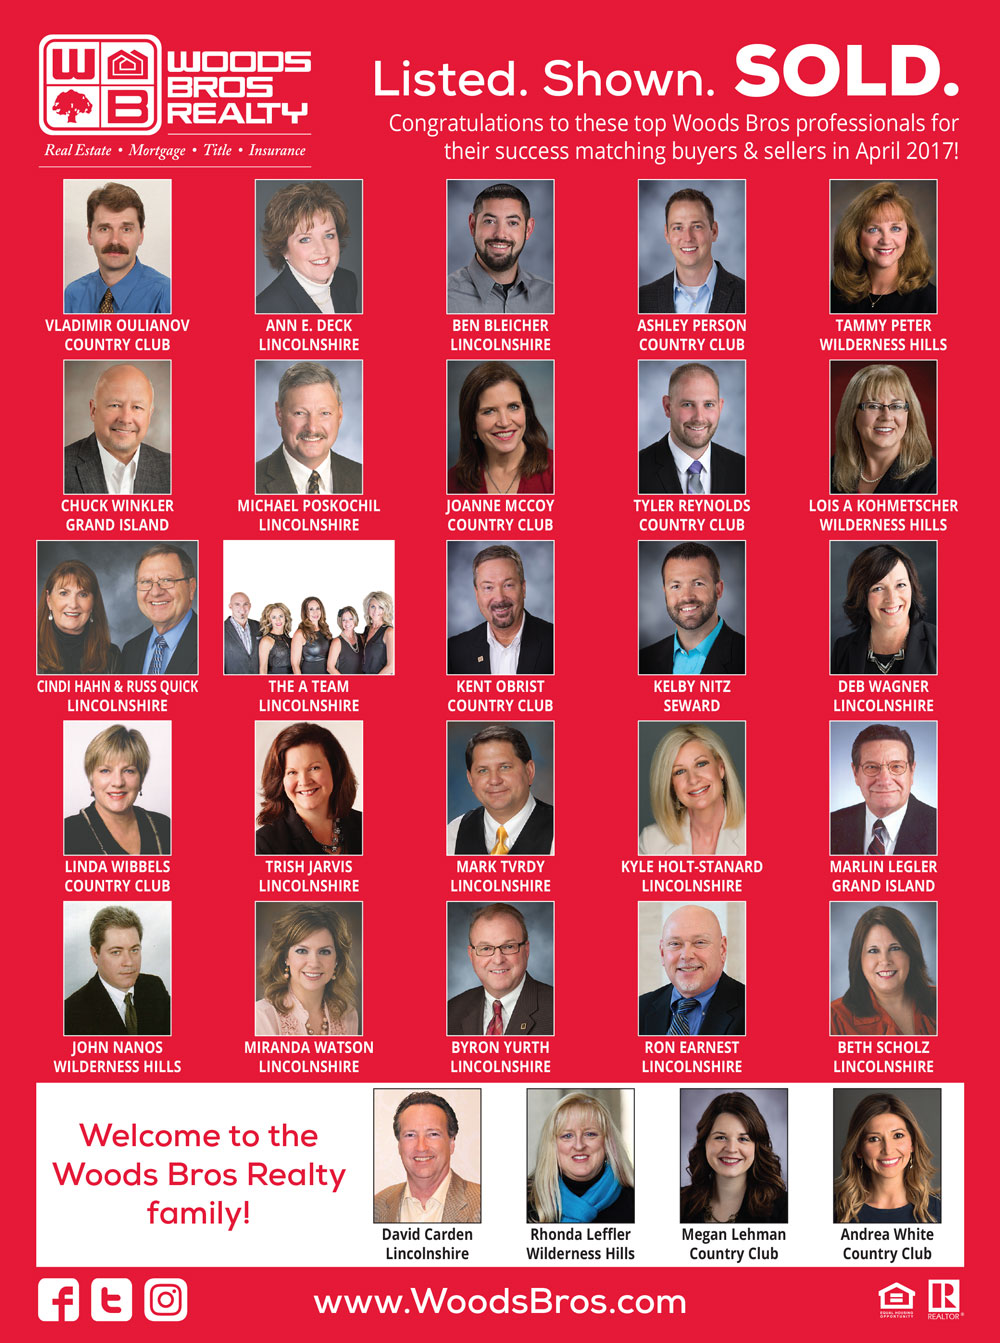 Woods Bros Realty Top Agents April 2017